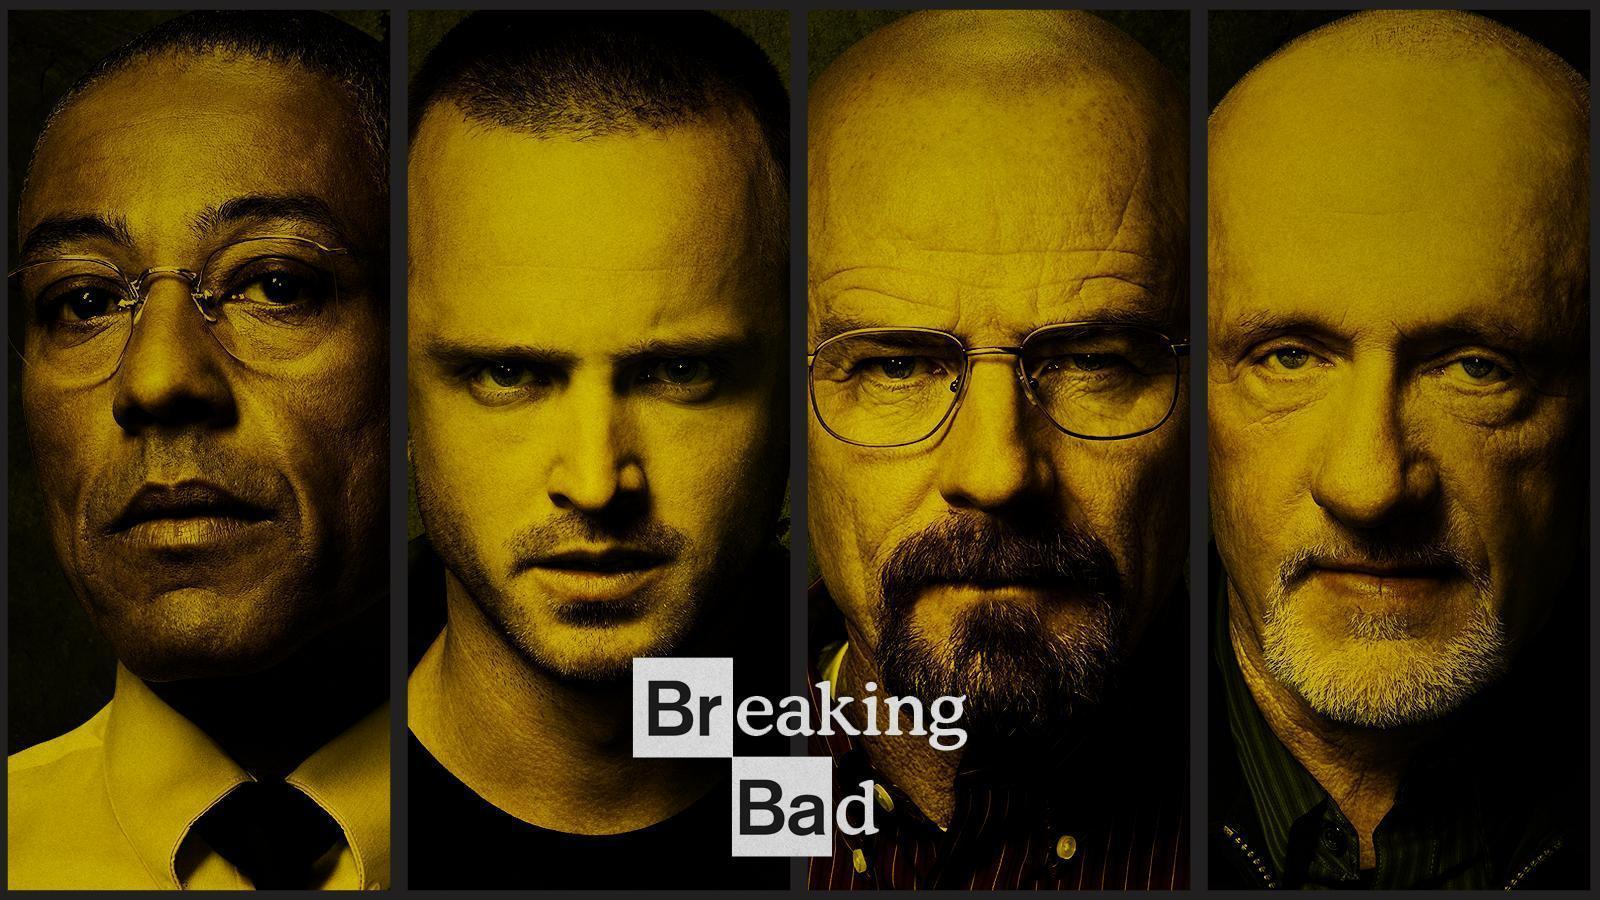 Wallpapers For > Breaking Bad Wallpapers Season 5 1920x1080